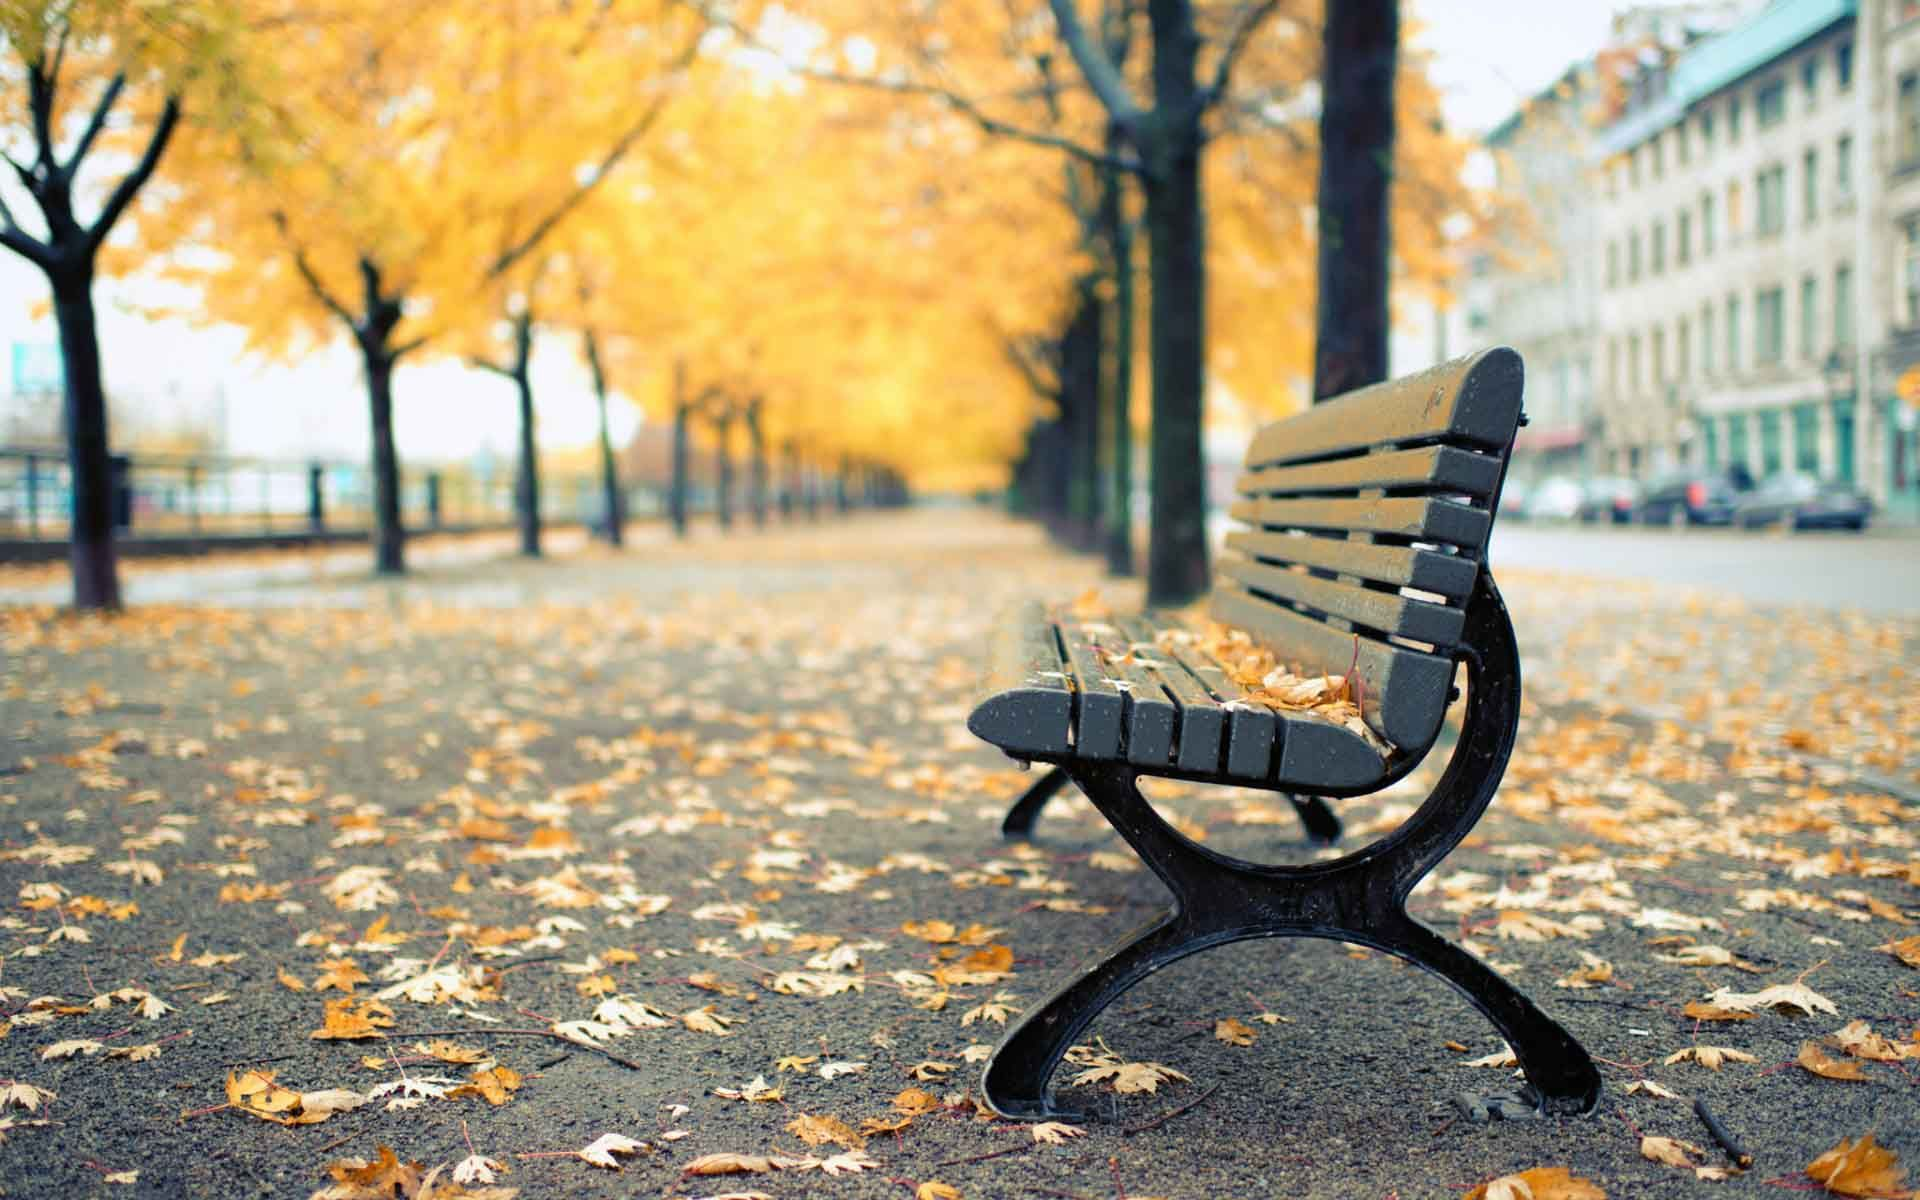 Bench In Park Hd Wallpaper Free Download Hd Wallpapers Wallpaper Free Download Desktop Pictures Outdoor Bench